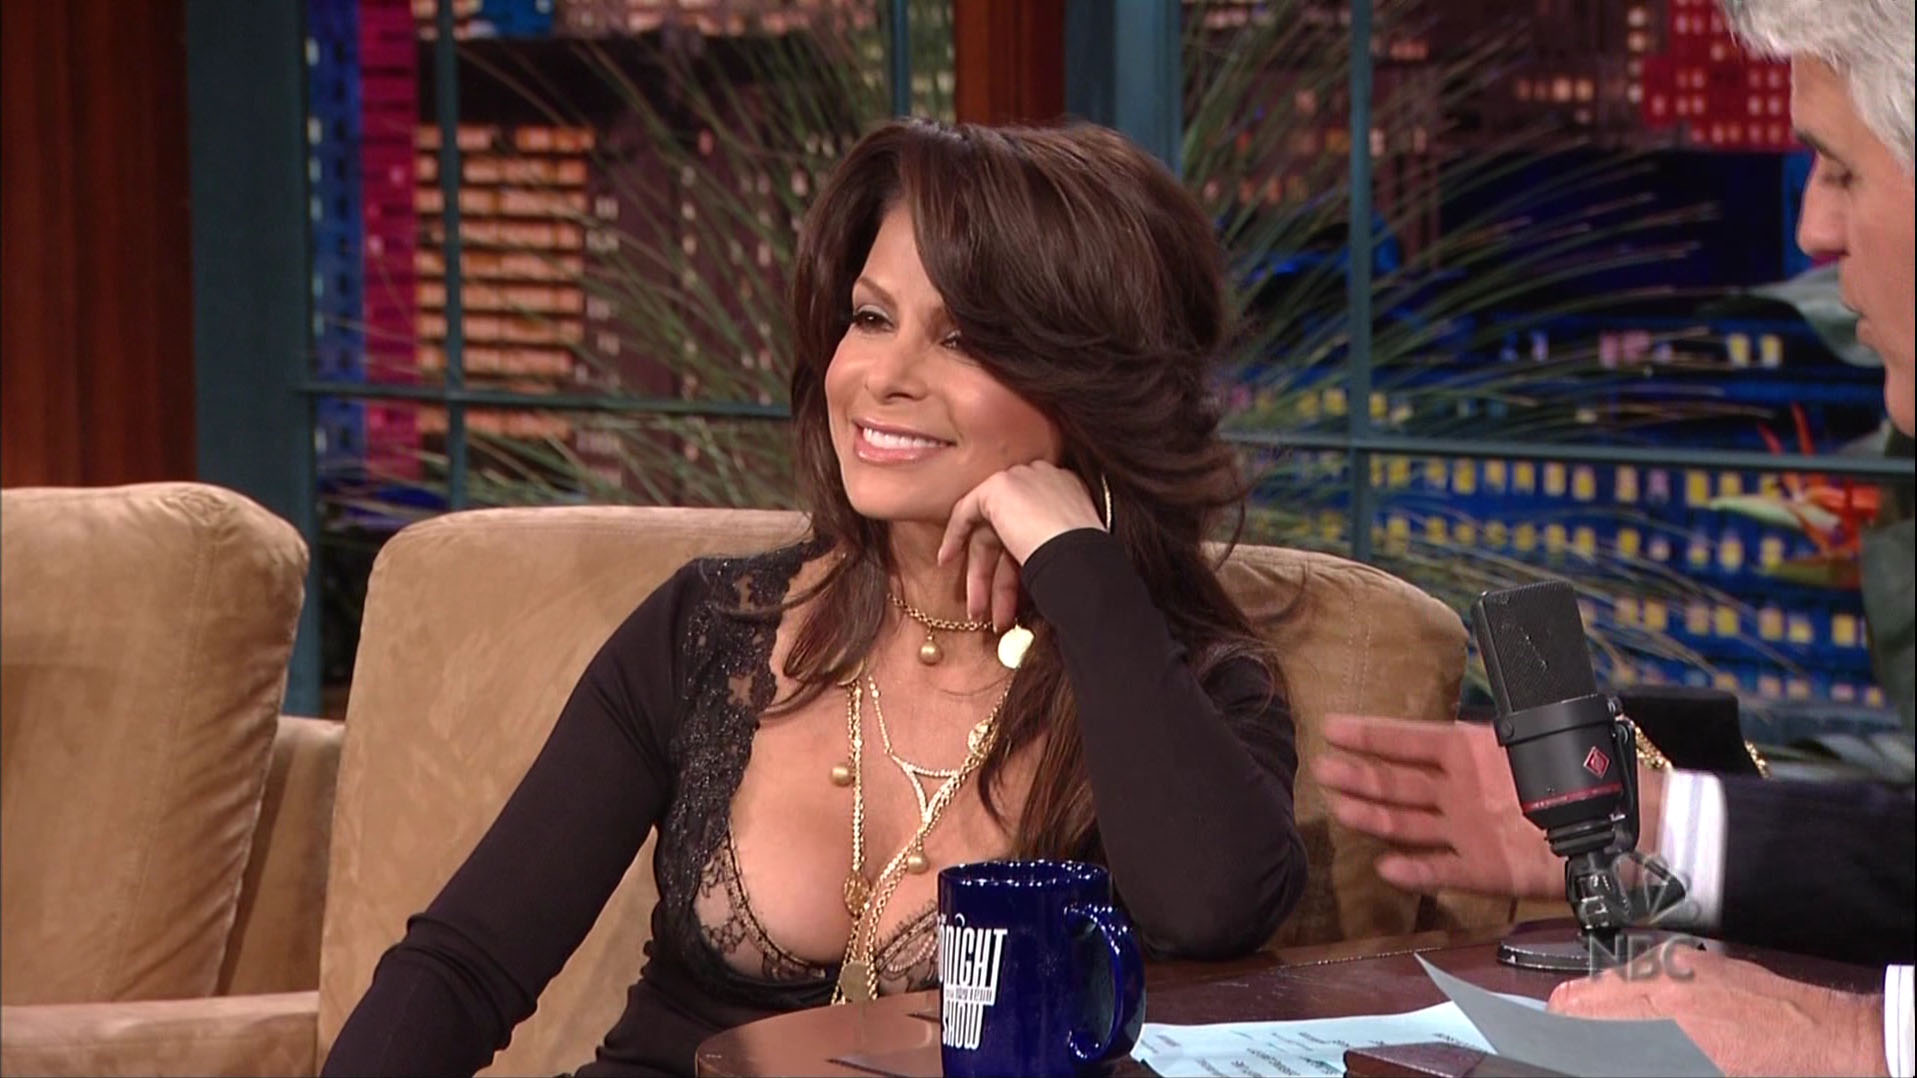 Paula abdul naked pics within showing porn images for paula abdul porn xxx photo 4